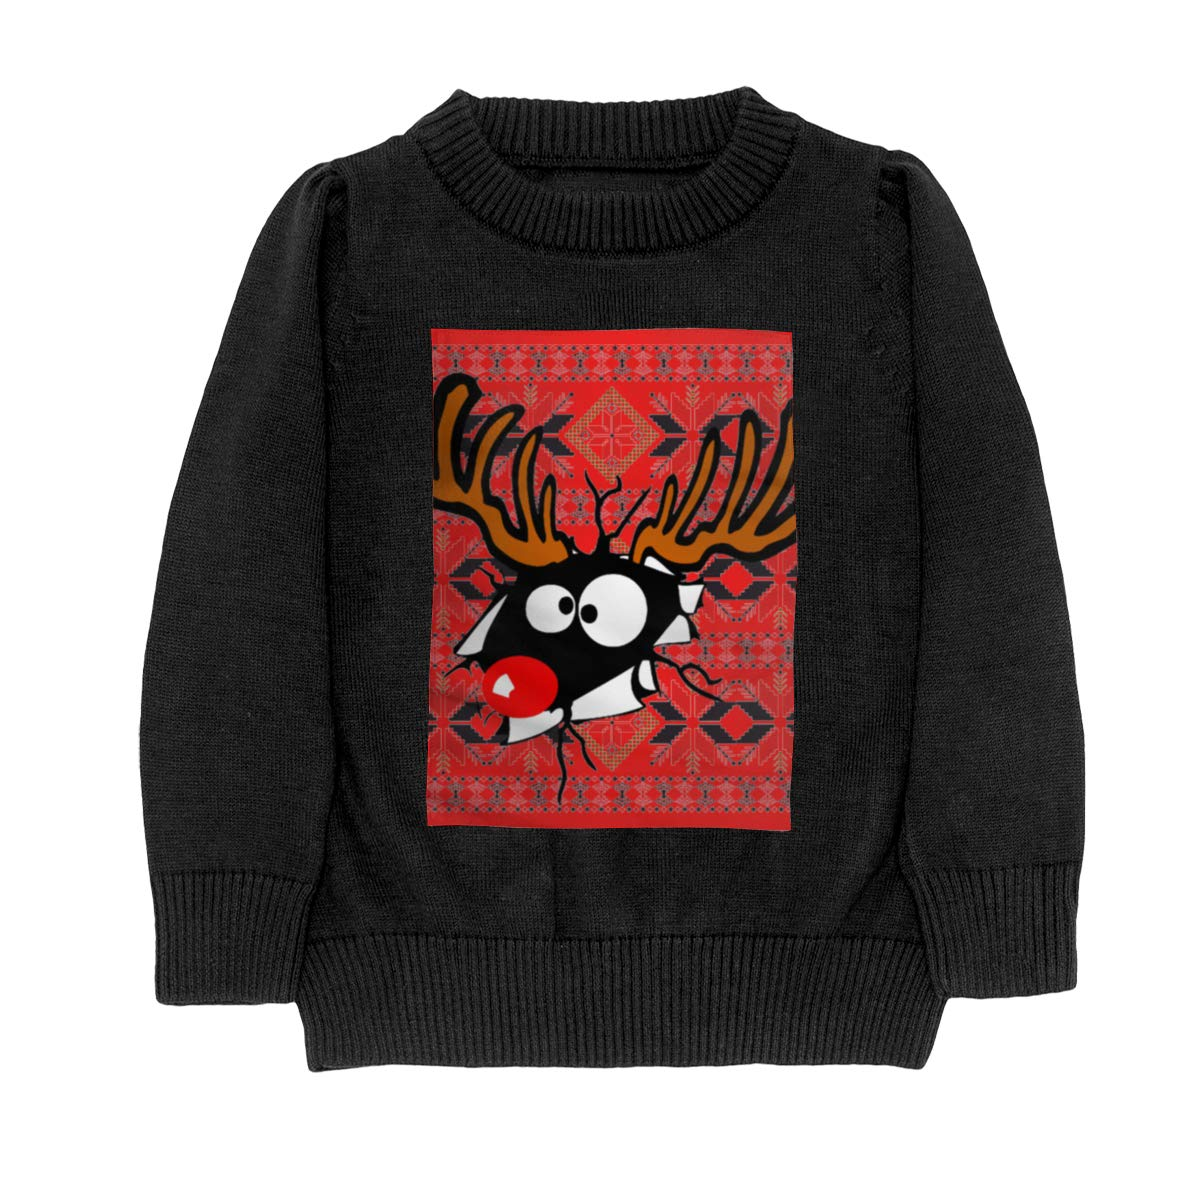 Moniery Christmas Deer Knit Sweater Pullover for Teens Girls